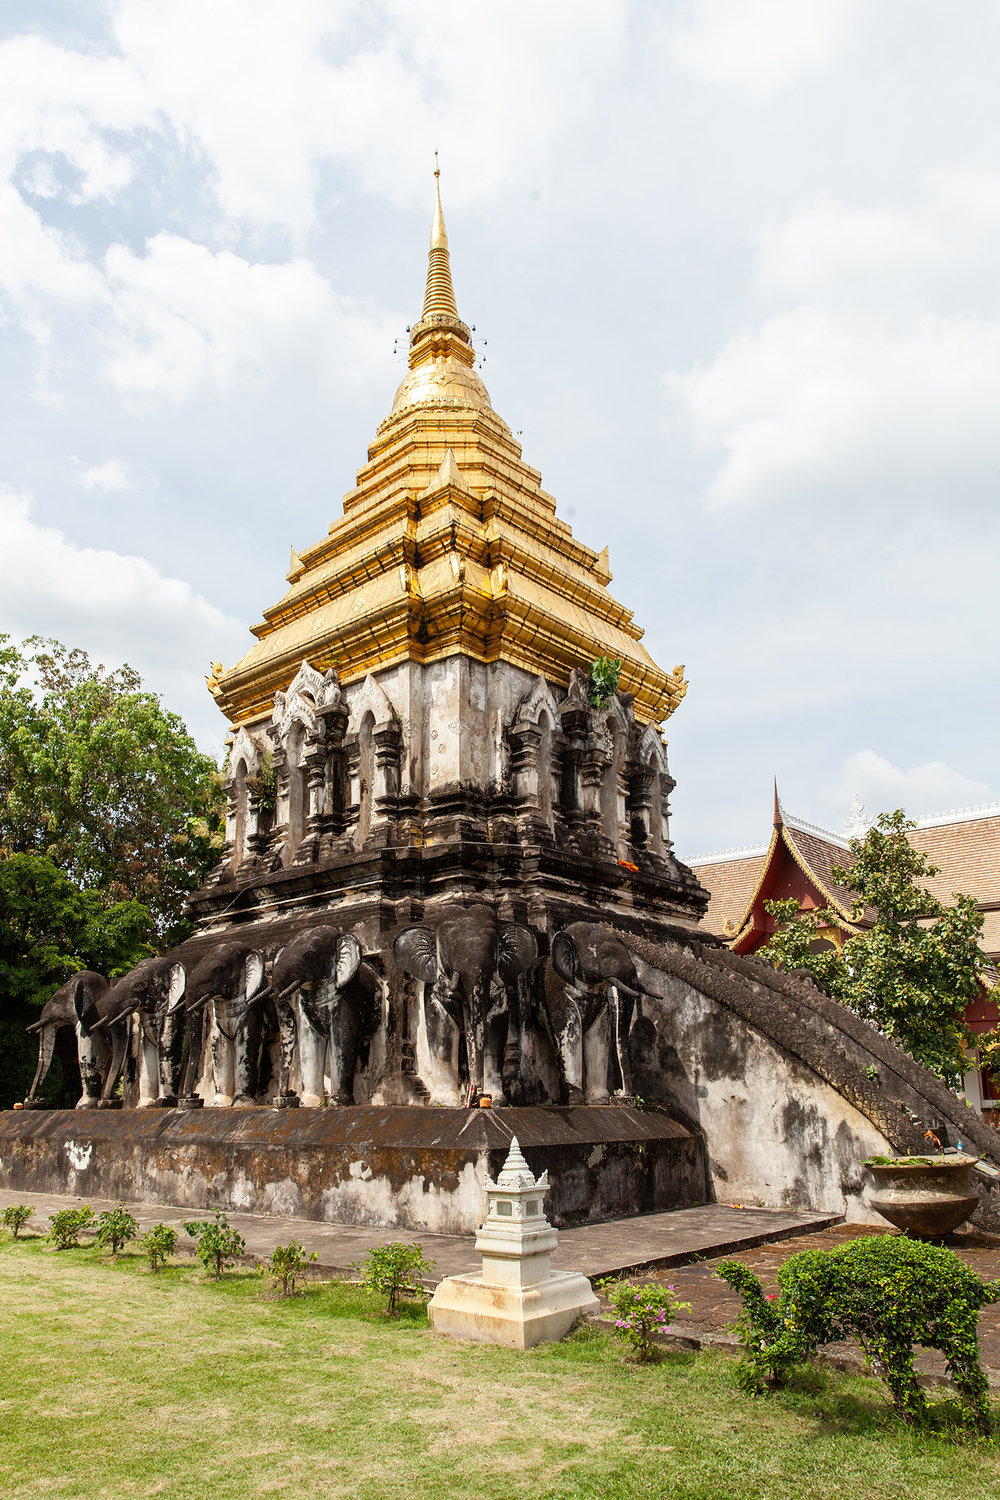 Elephant pagoda at Wat Chiang Man